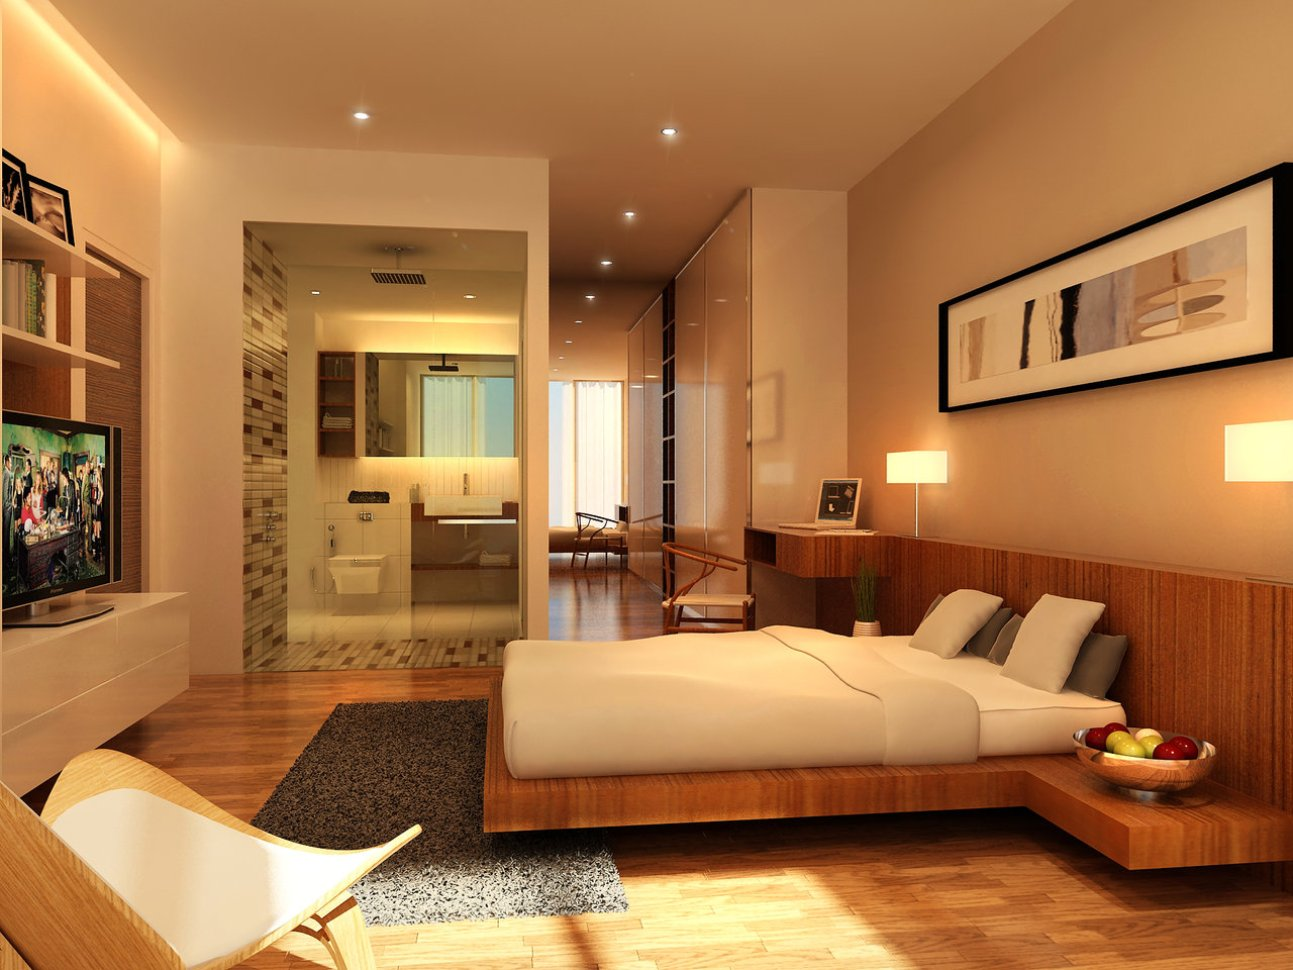 Bedrooms Interior Designs Bedroom Interior Design From India House Interior Design Bedroom